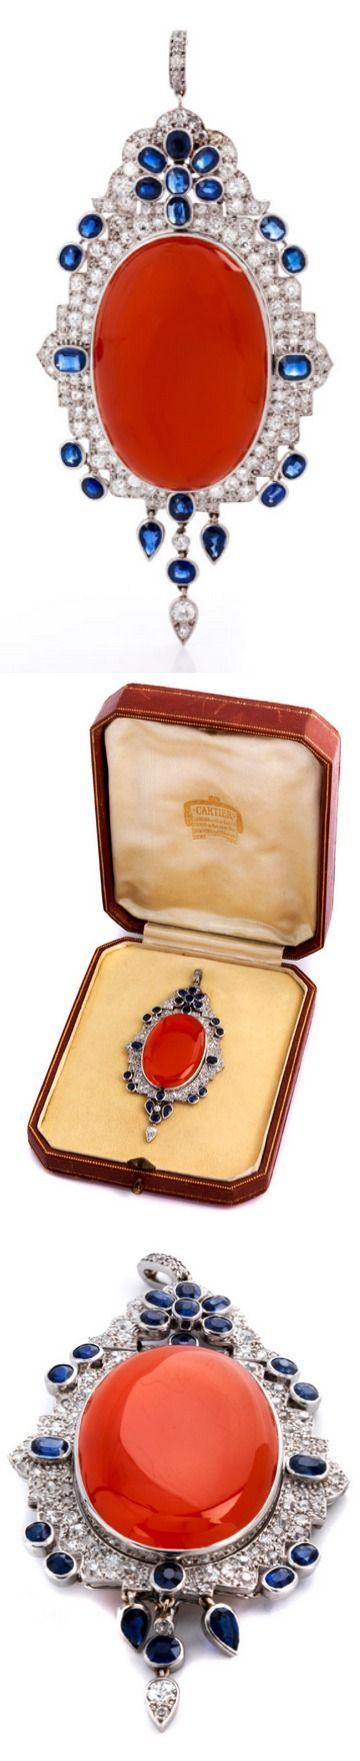 """Carnelian, diamond and sapphire pendant by Cartier - Yellow gold and platinum. Signed """"Mtd Cartier"""". Ca. 1930. Highly decorative, exceptional brooch or pendant with central, large flat cabochon-cut carnelian sun (with closed true-foiled back), approx 3.8 cm x 2 cm, with a surround of Fine cornflower blue oval and drop shaped facetted sapphires, altogether approx 6:10 CT, and old-cut diamonds, altogether approx 4:10 CT.:"""